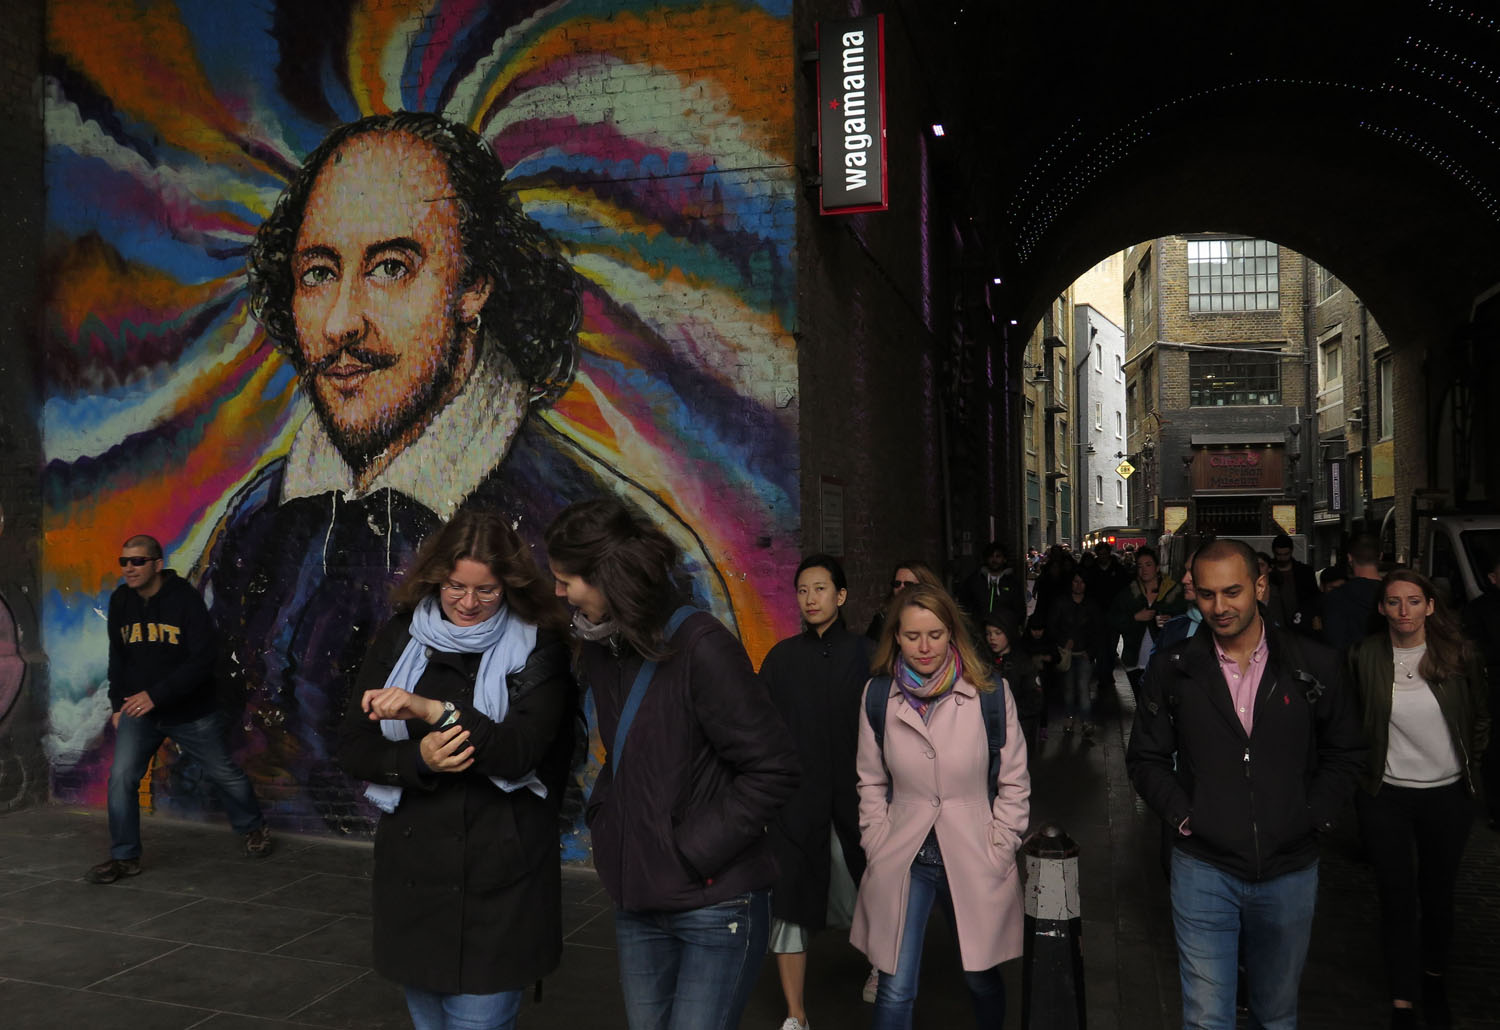 England-London-Street-Scenes-Shakespeare-Mural